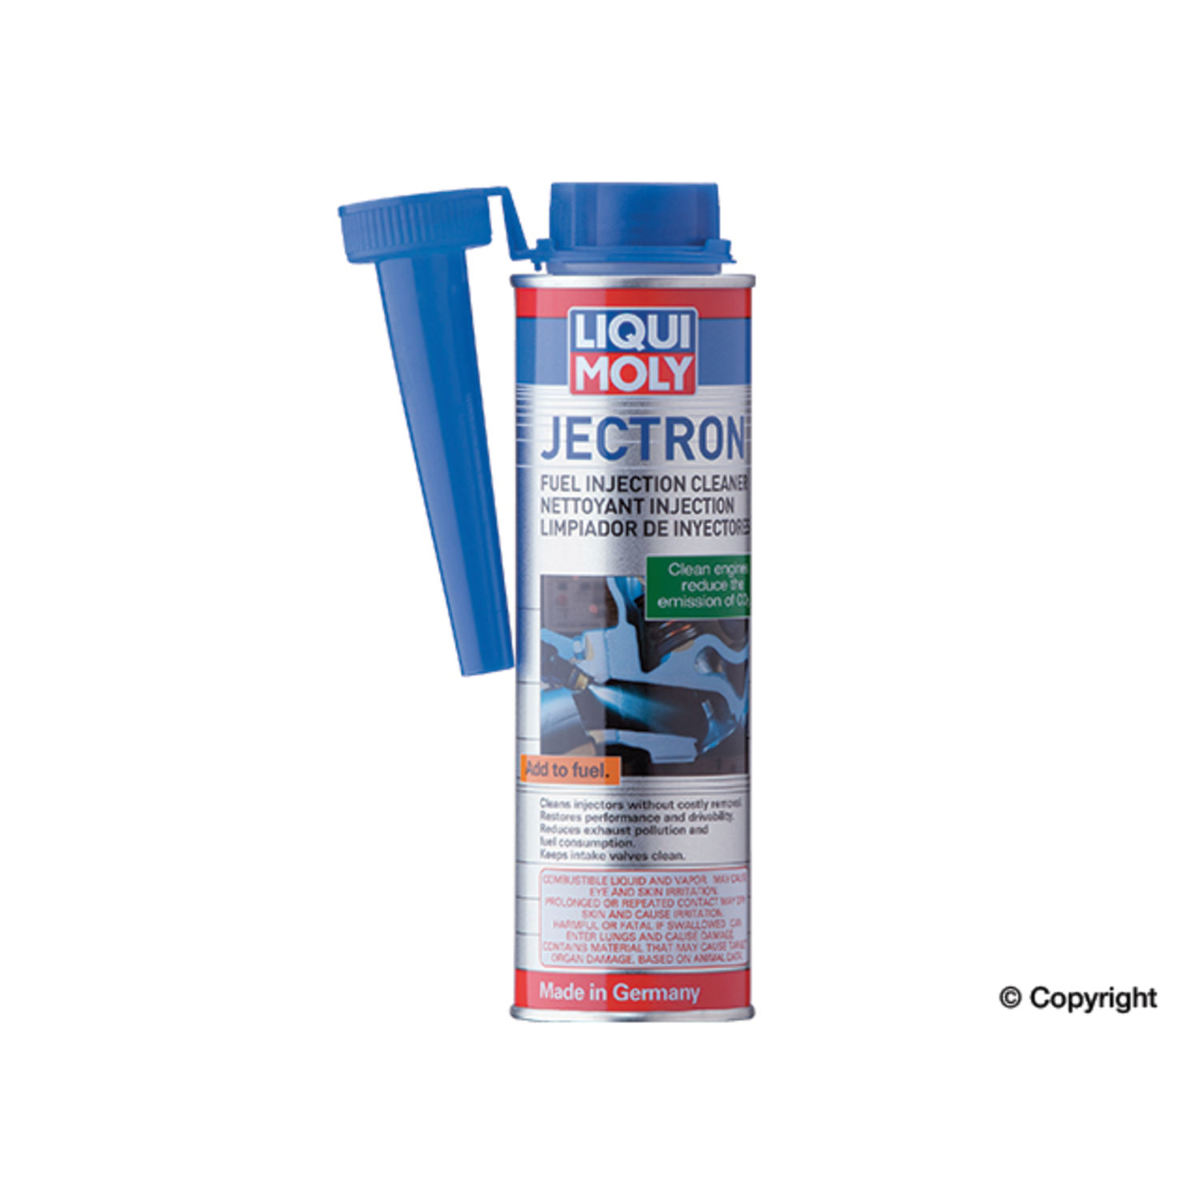 Fuel Injector Cleaning Cost >> Details About Liqui Moly Jectron Fuel Injection Cleaner 300ml 2007